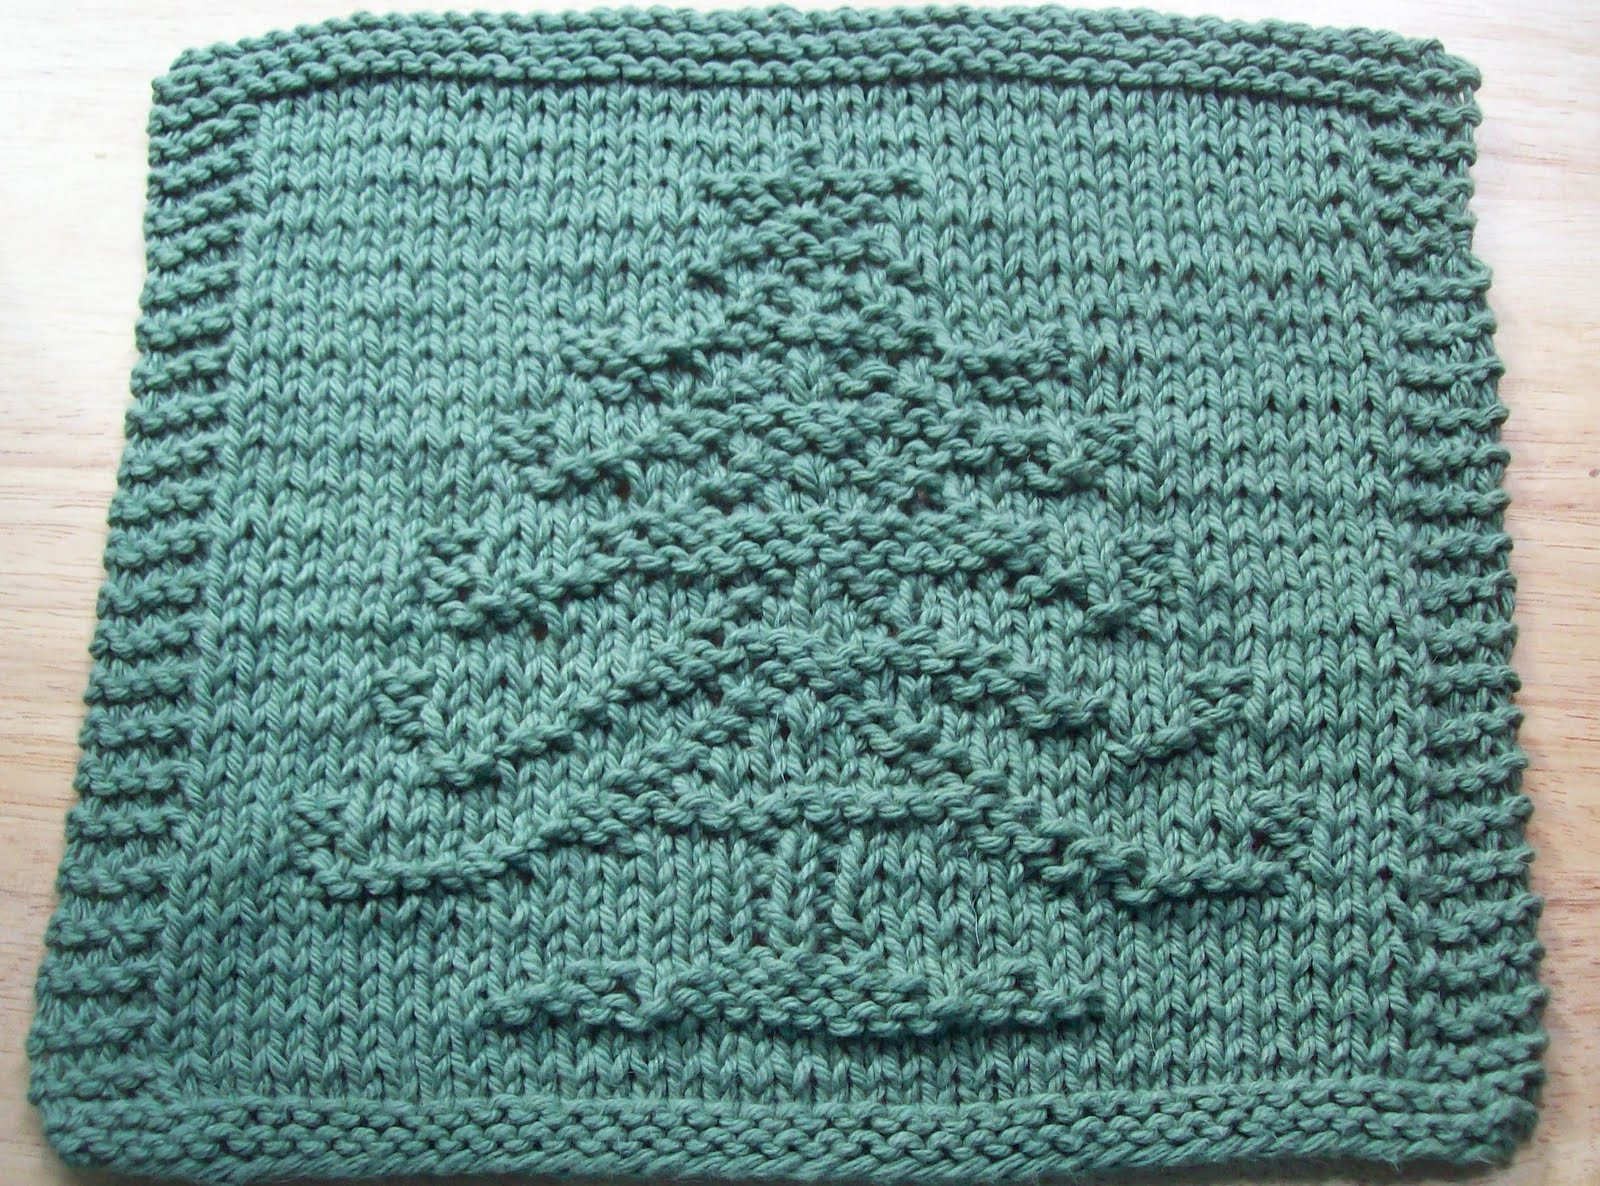 Inspirational Free Knitted Dishcloth Patterns for Christmas Knitted Dishcloth Patterns for Christmas Of Adorable 43 Pics Knitted Dishcloth Patterns for Christmas